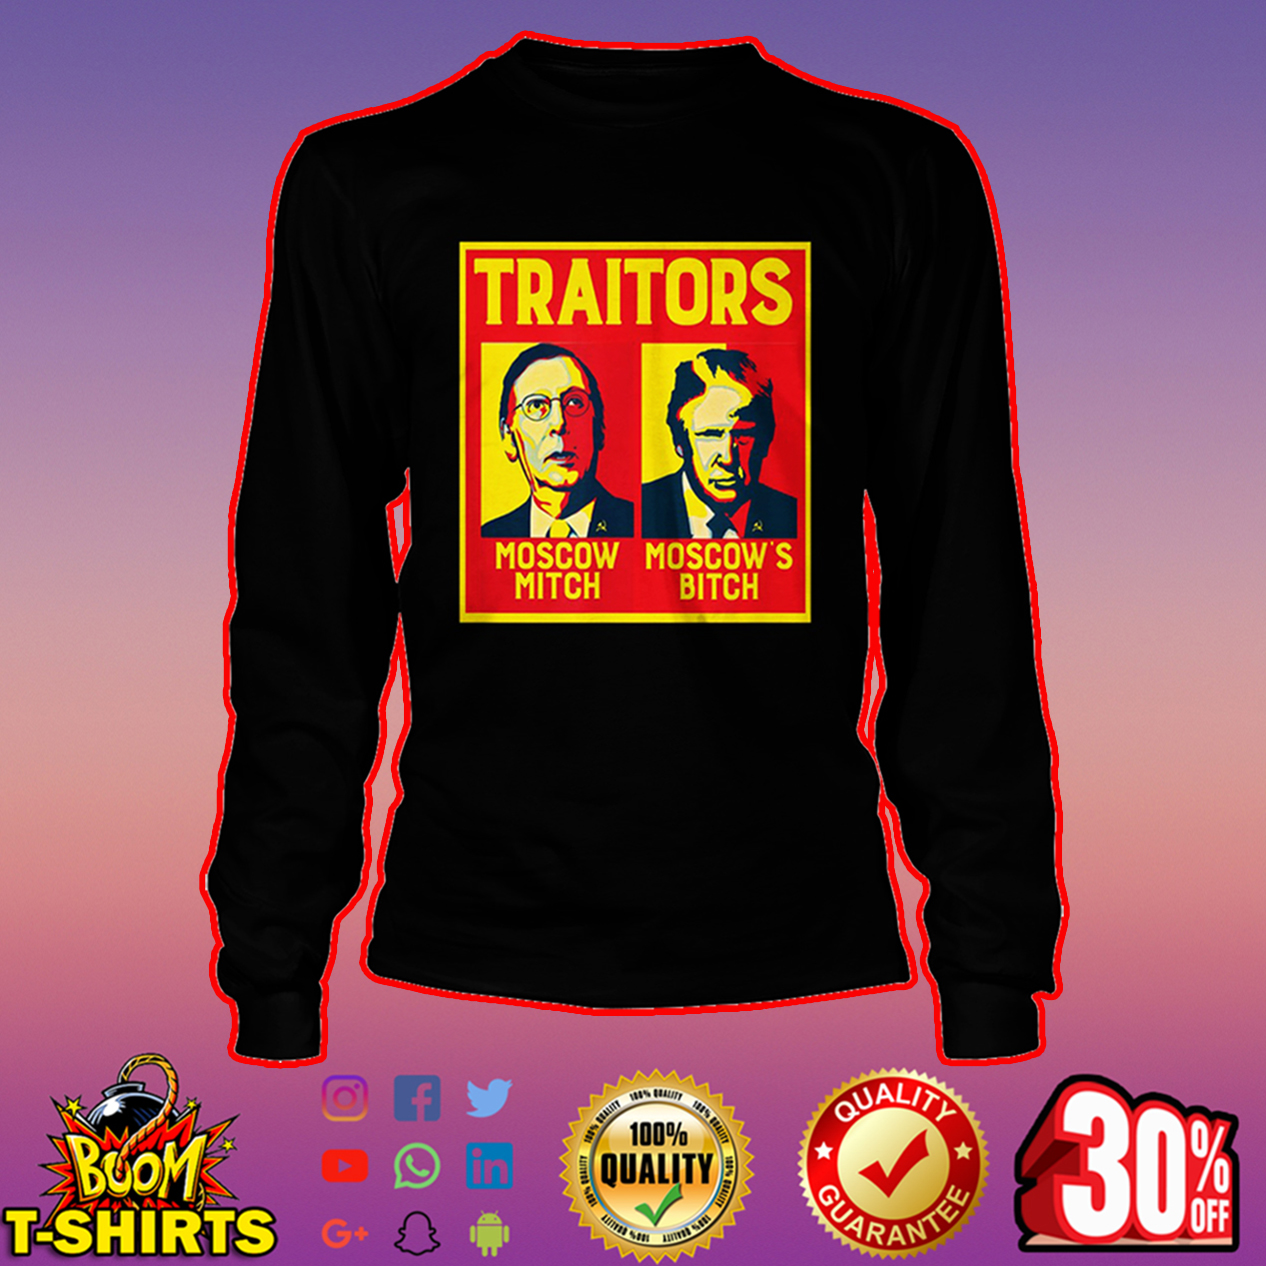 Traitors Ditch Moscow Mitch long sleeve tee